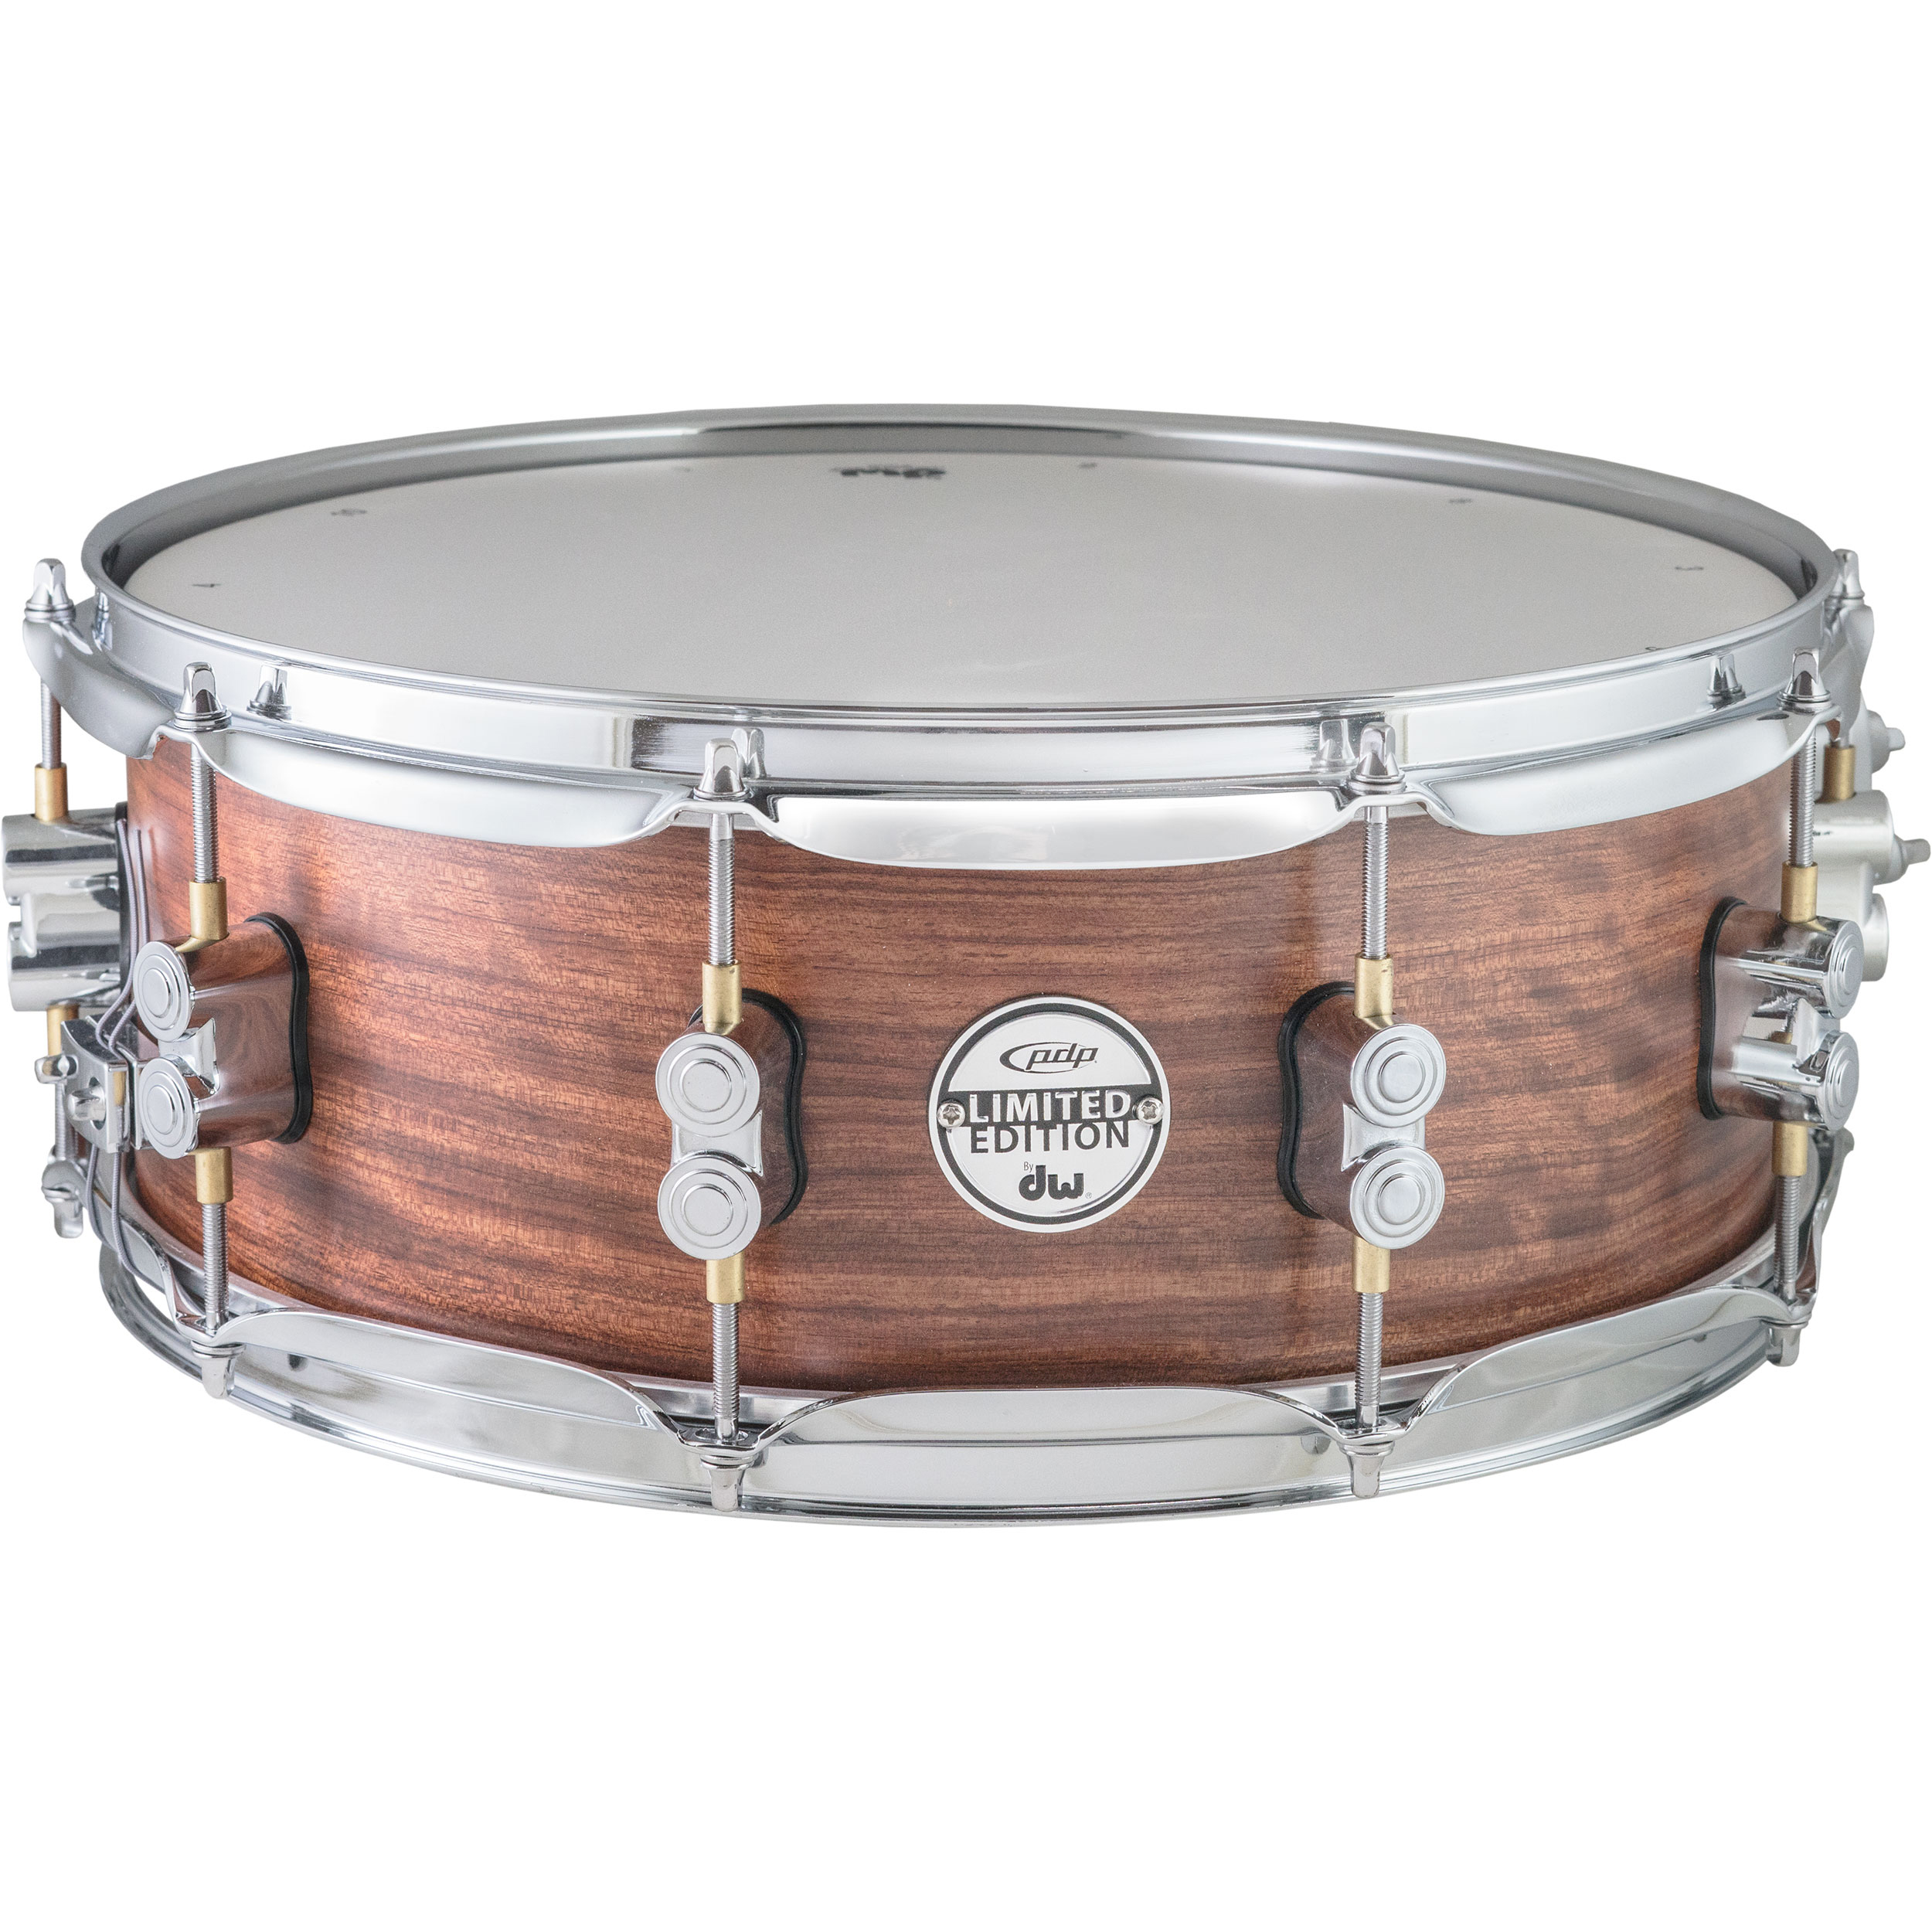 """PDP 5.5"""" x 14"""" Limited Edition Maple/Bubinga Snare Drum"""